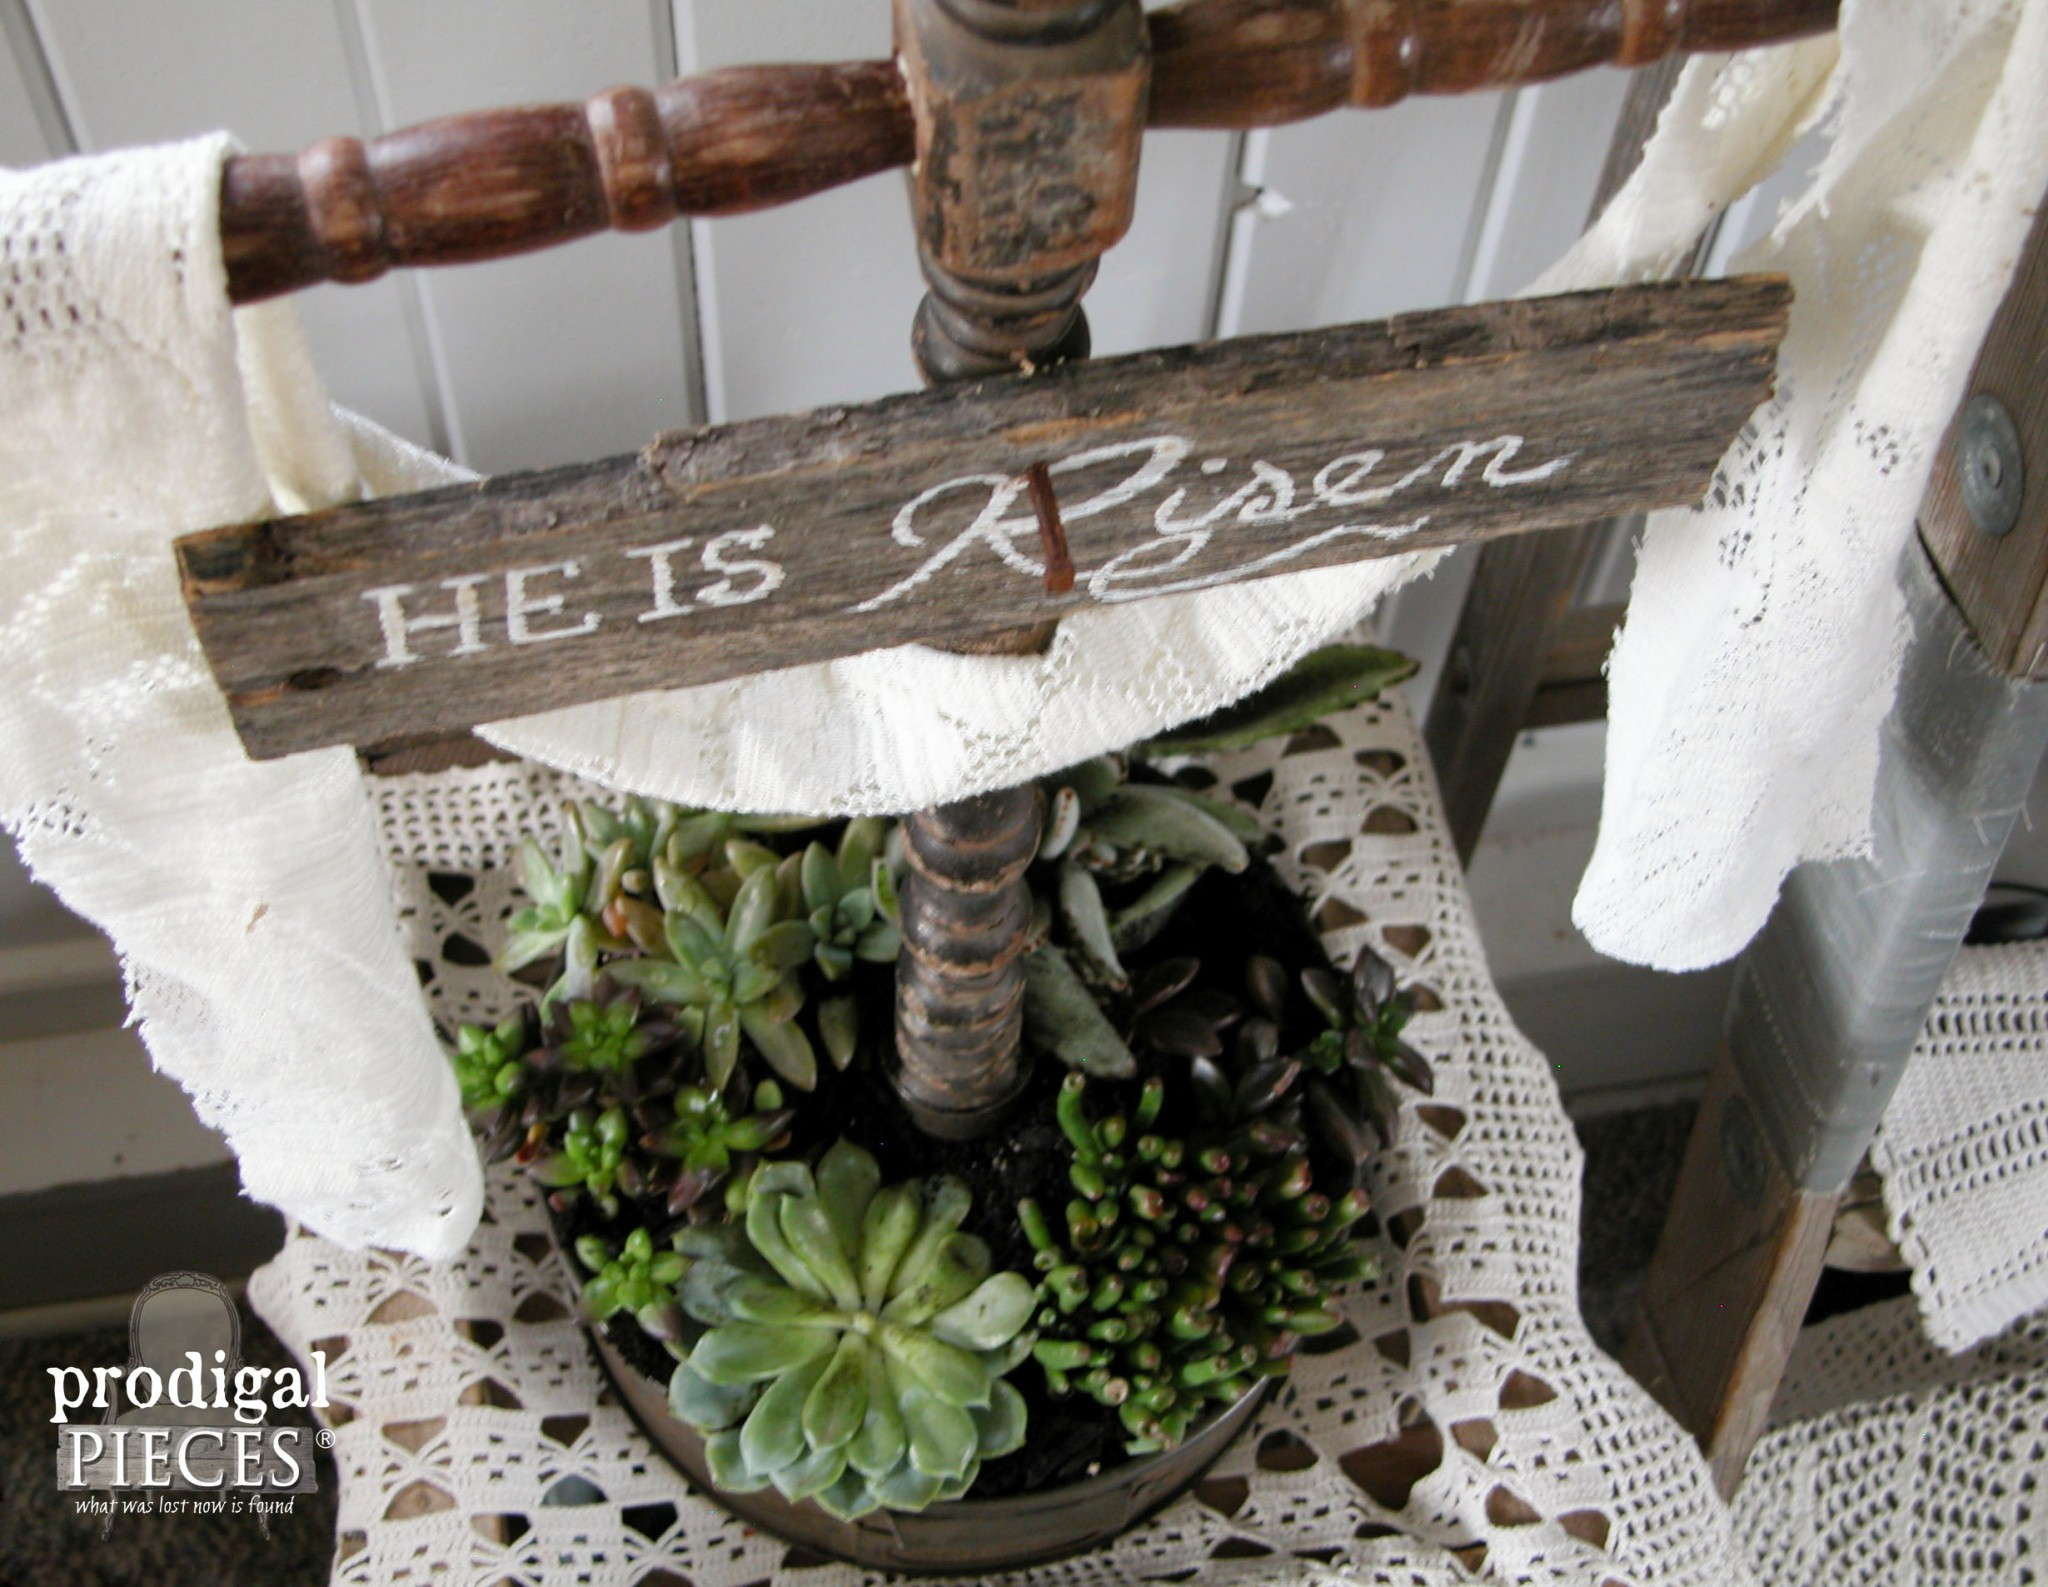 Vintage Cake Pan turned Succulent Planter with Easter Cross by Prodigal Pieces | www.prodigalpieces.com